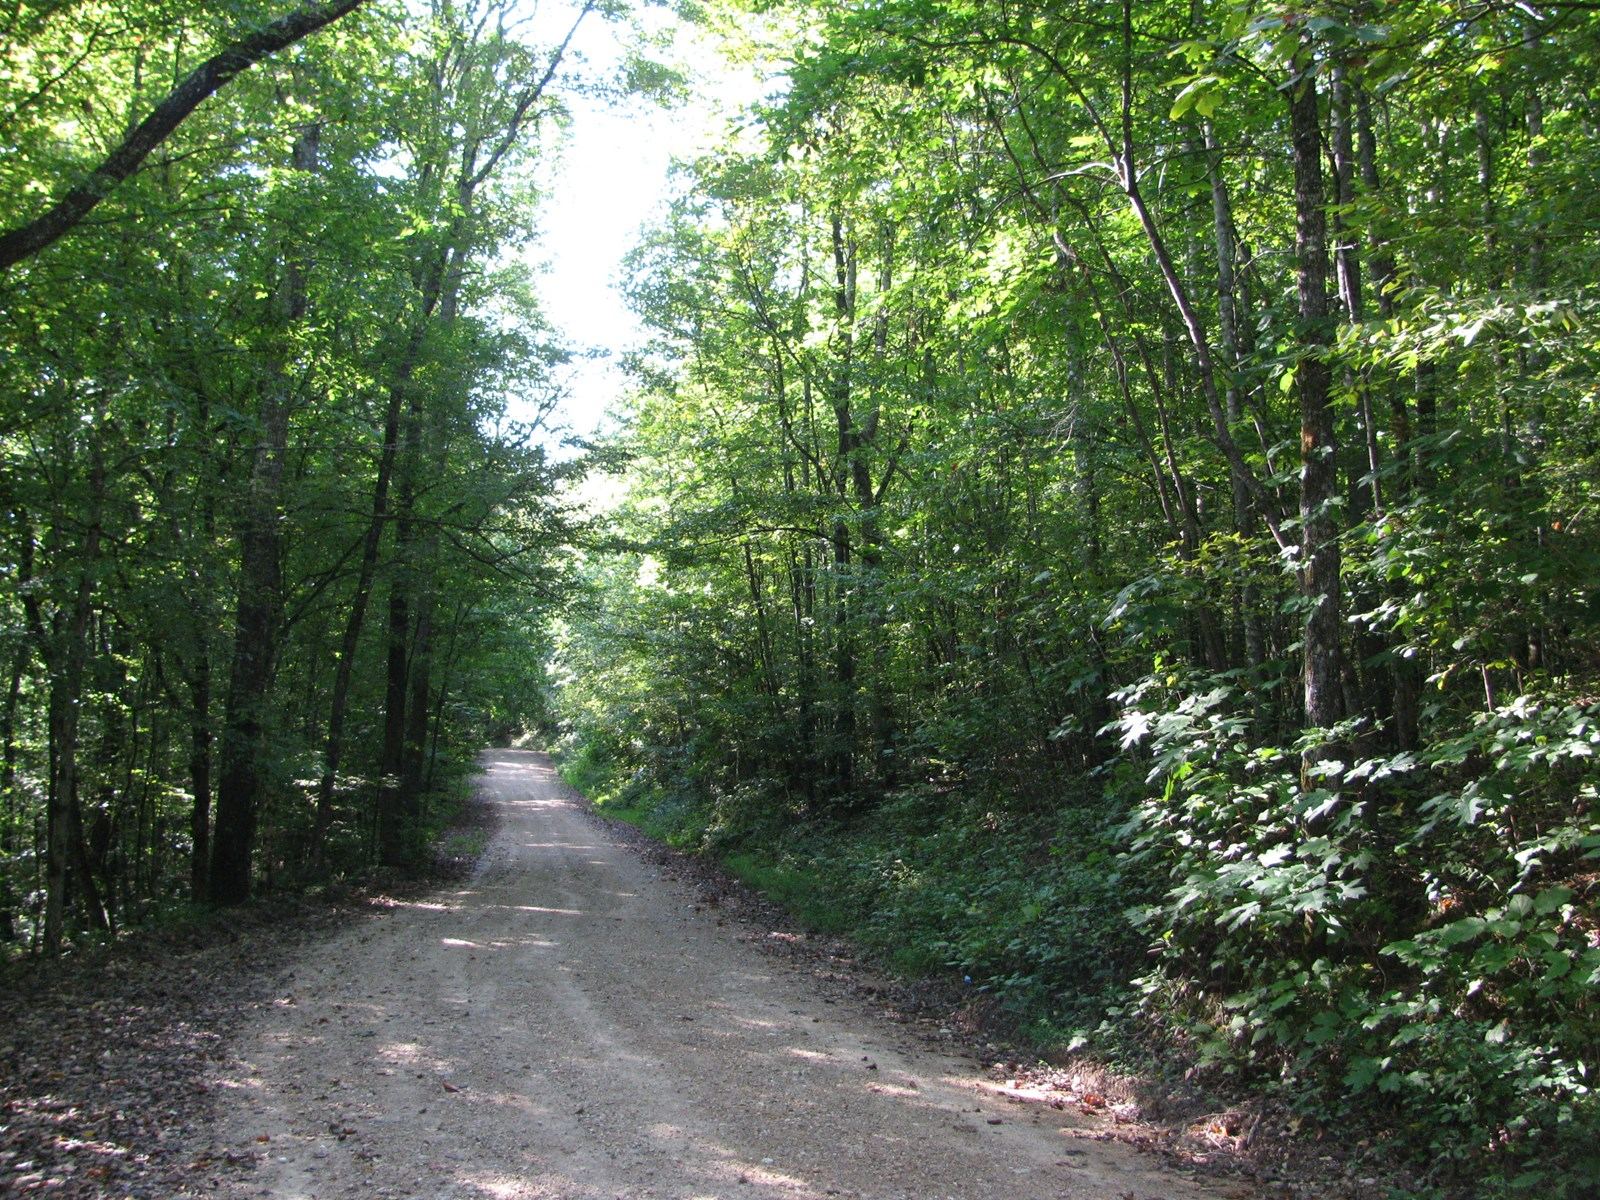 LAND FOR SALE IN TENNESSEE, OWNER FINANCING POSSIBLE